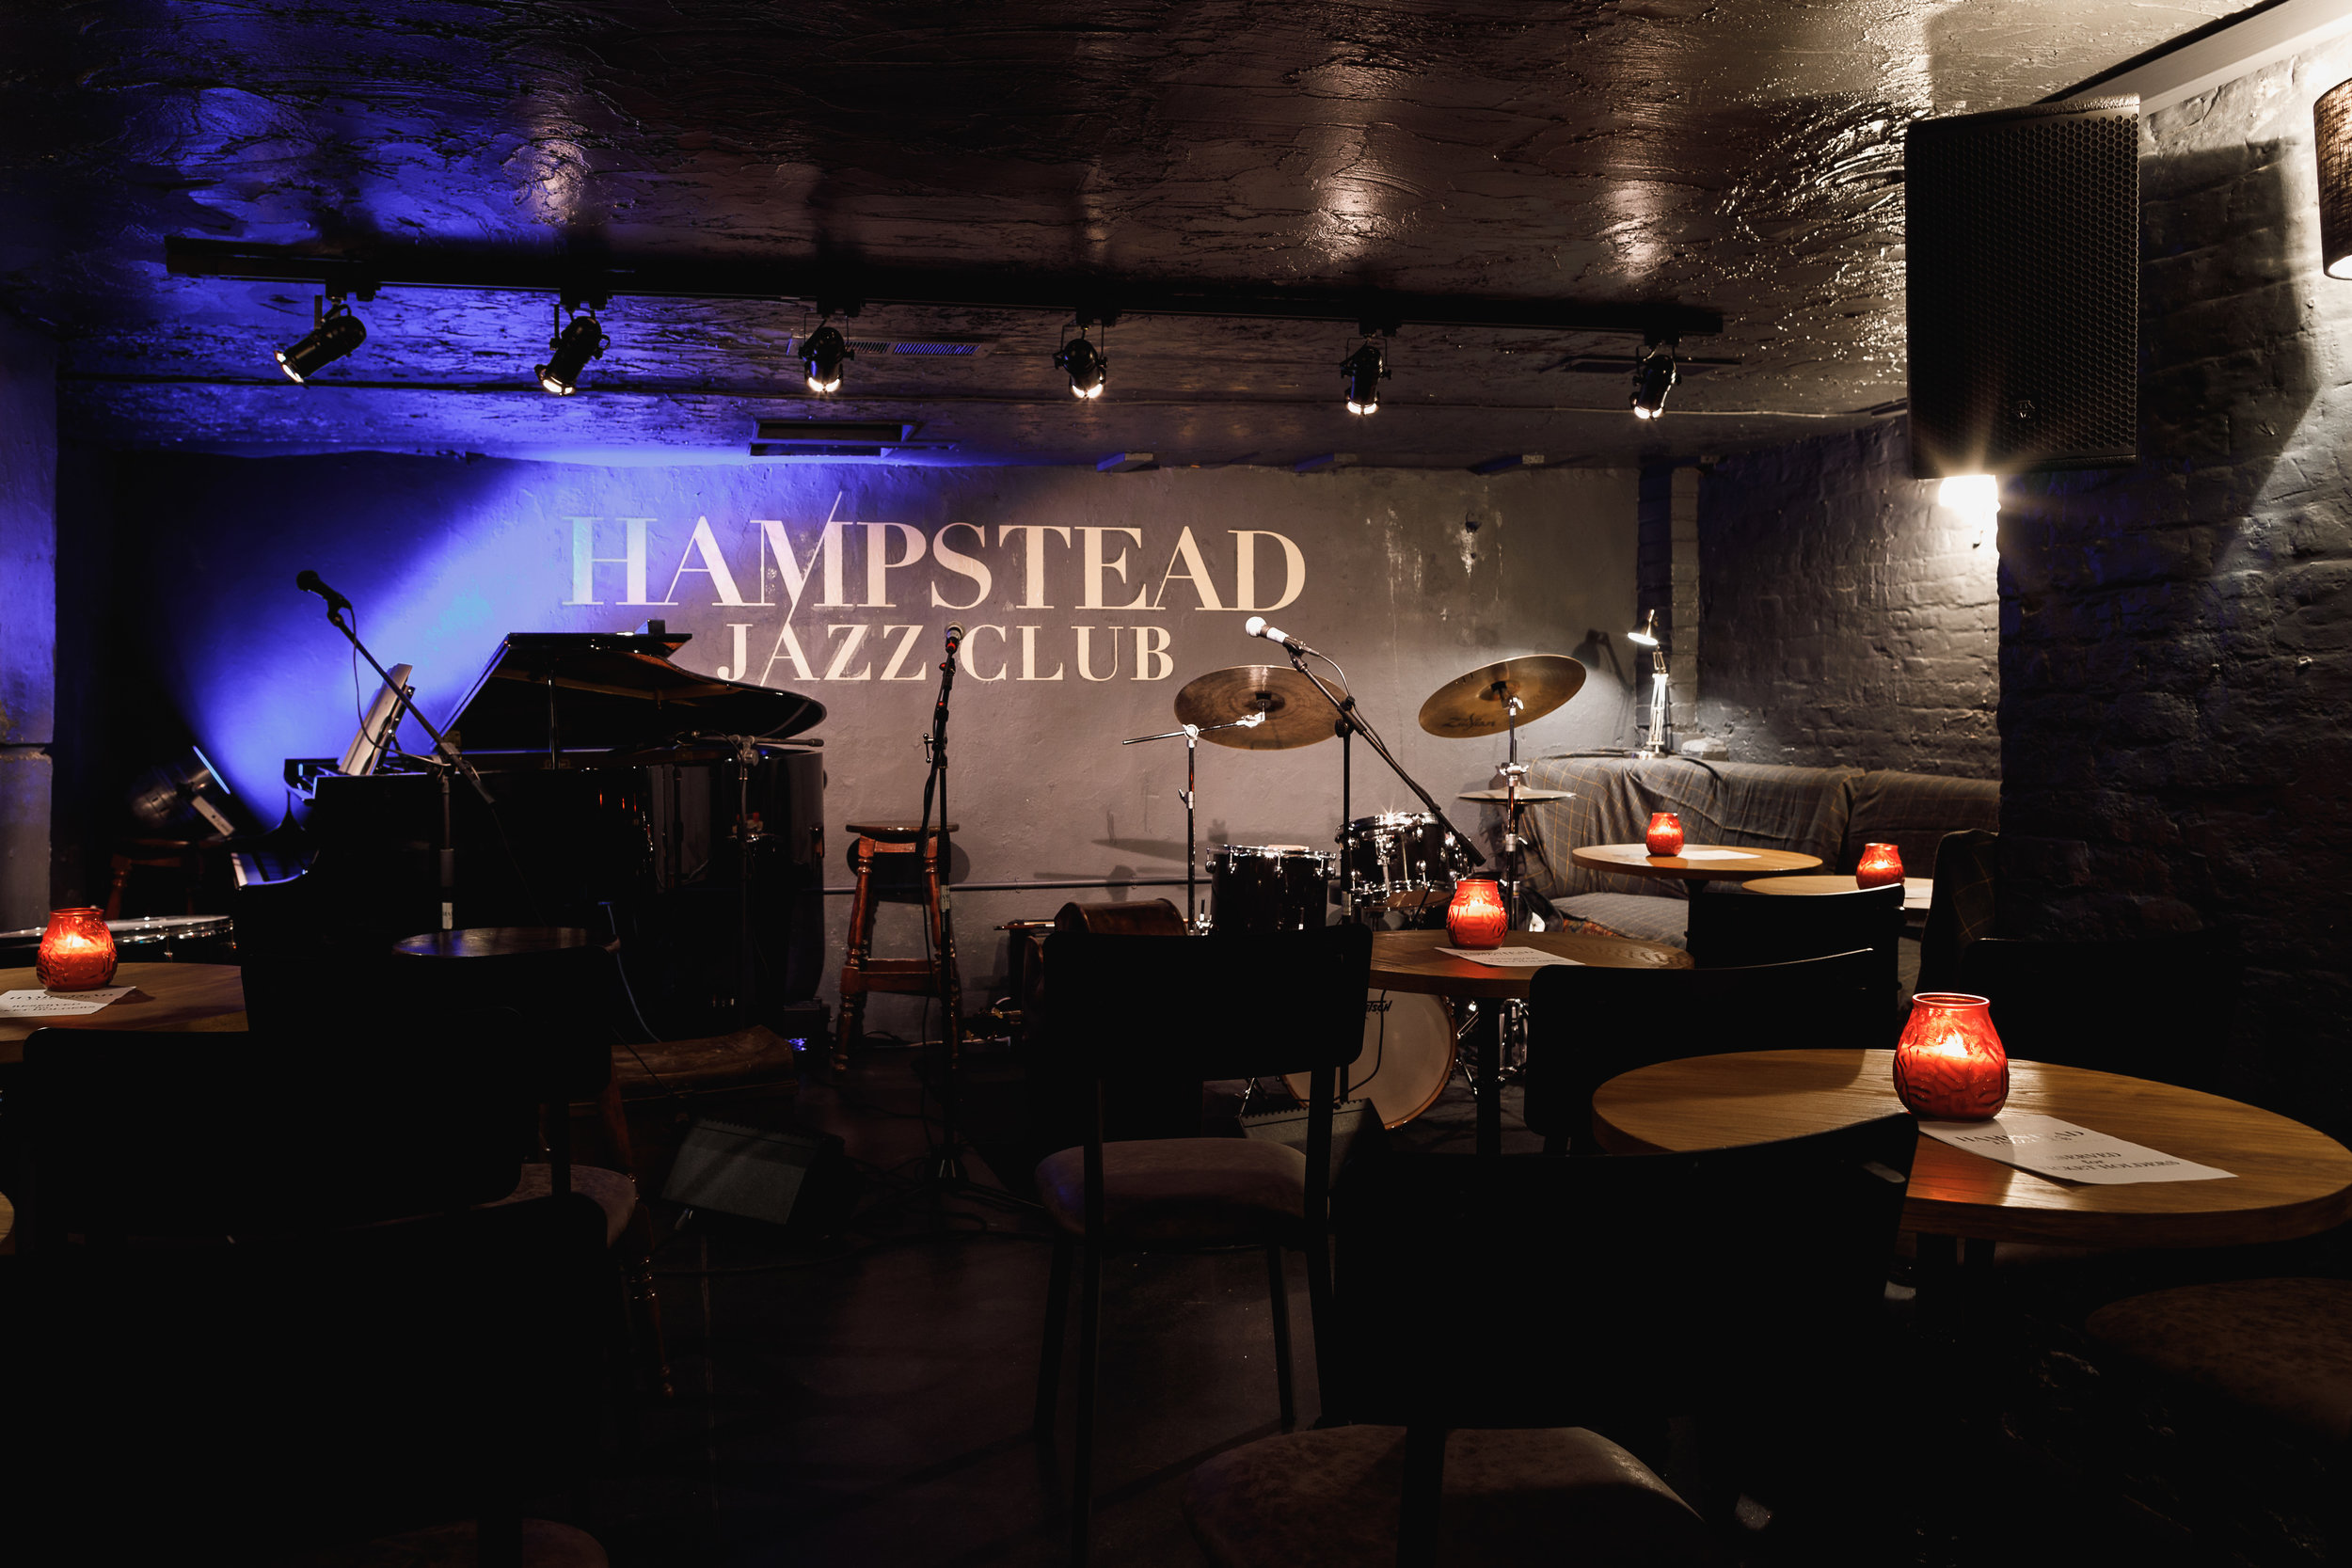 Music Venues - Lateralize are proud co-owners of the Hampstead Jazz Club one of the best new live music venues in North London, hosting diverse talent, including emerging and established musicians in an intimate setting.